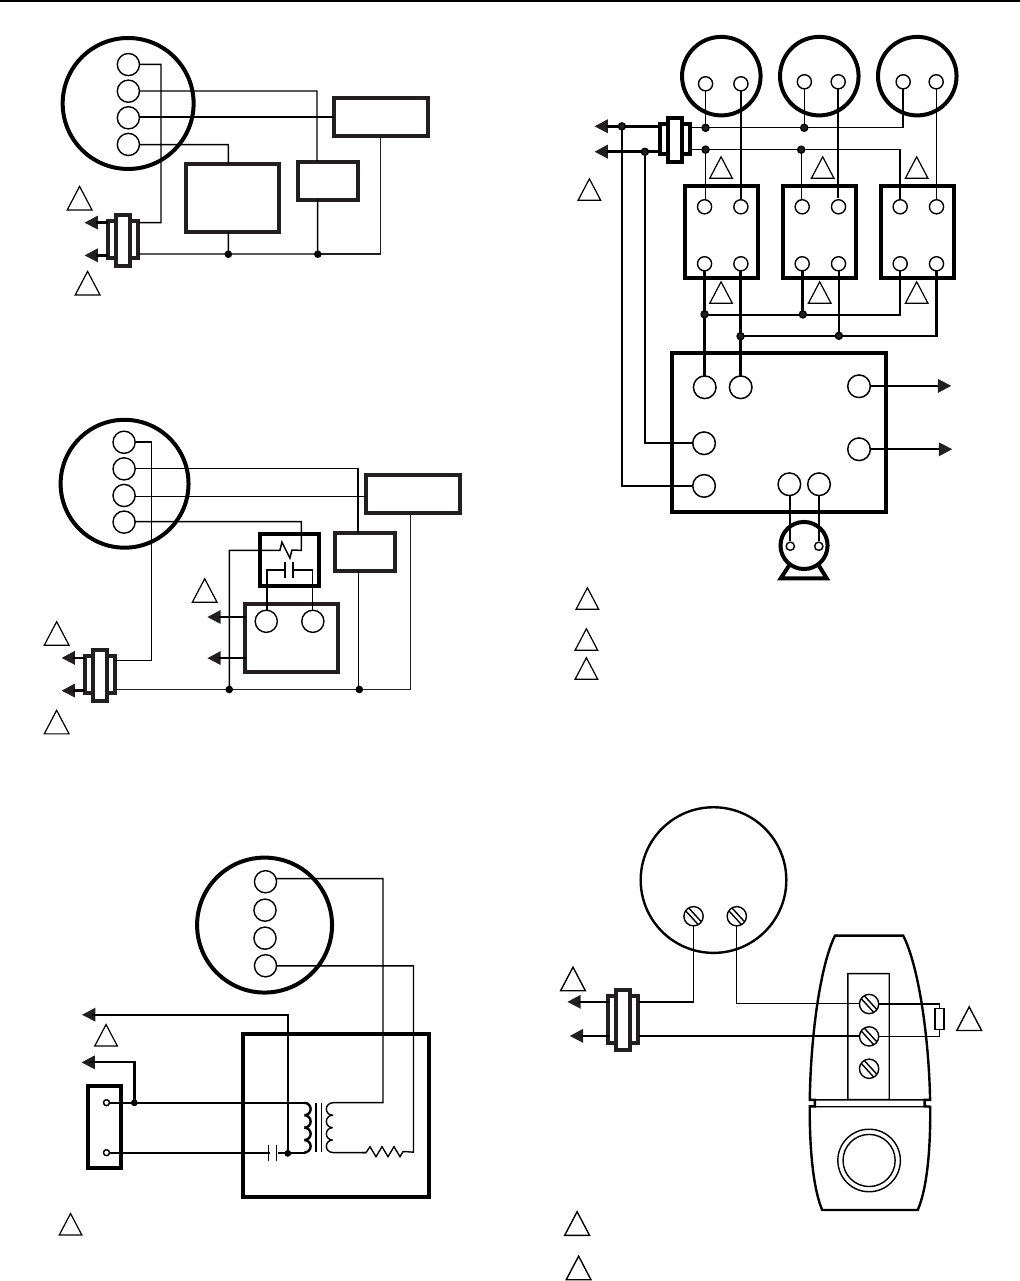 hight resolution of t8700b1007 heat only wiring diagram for controlling 2 wire hot water zone valves